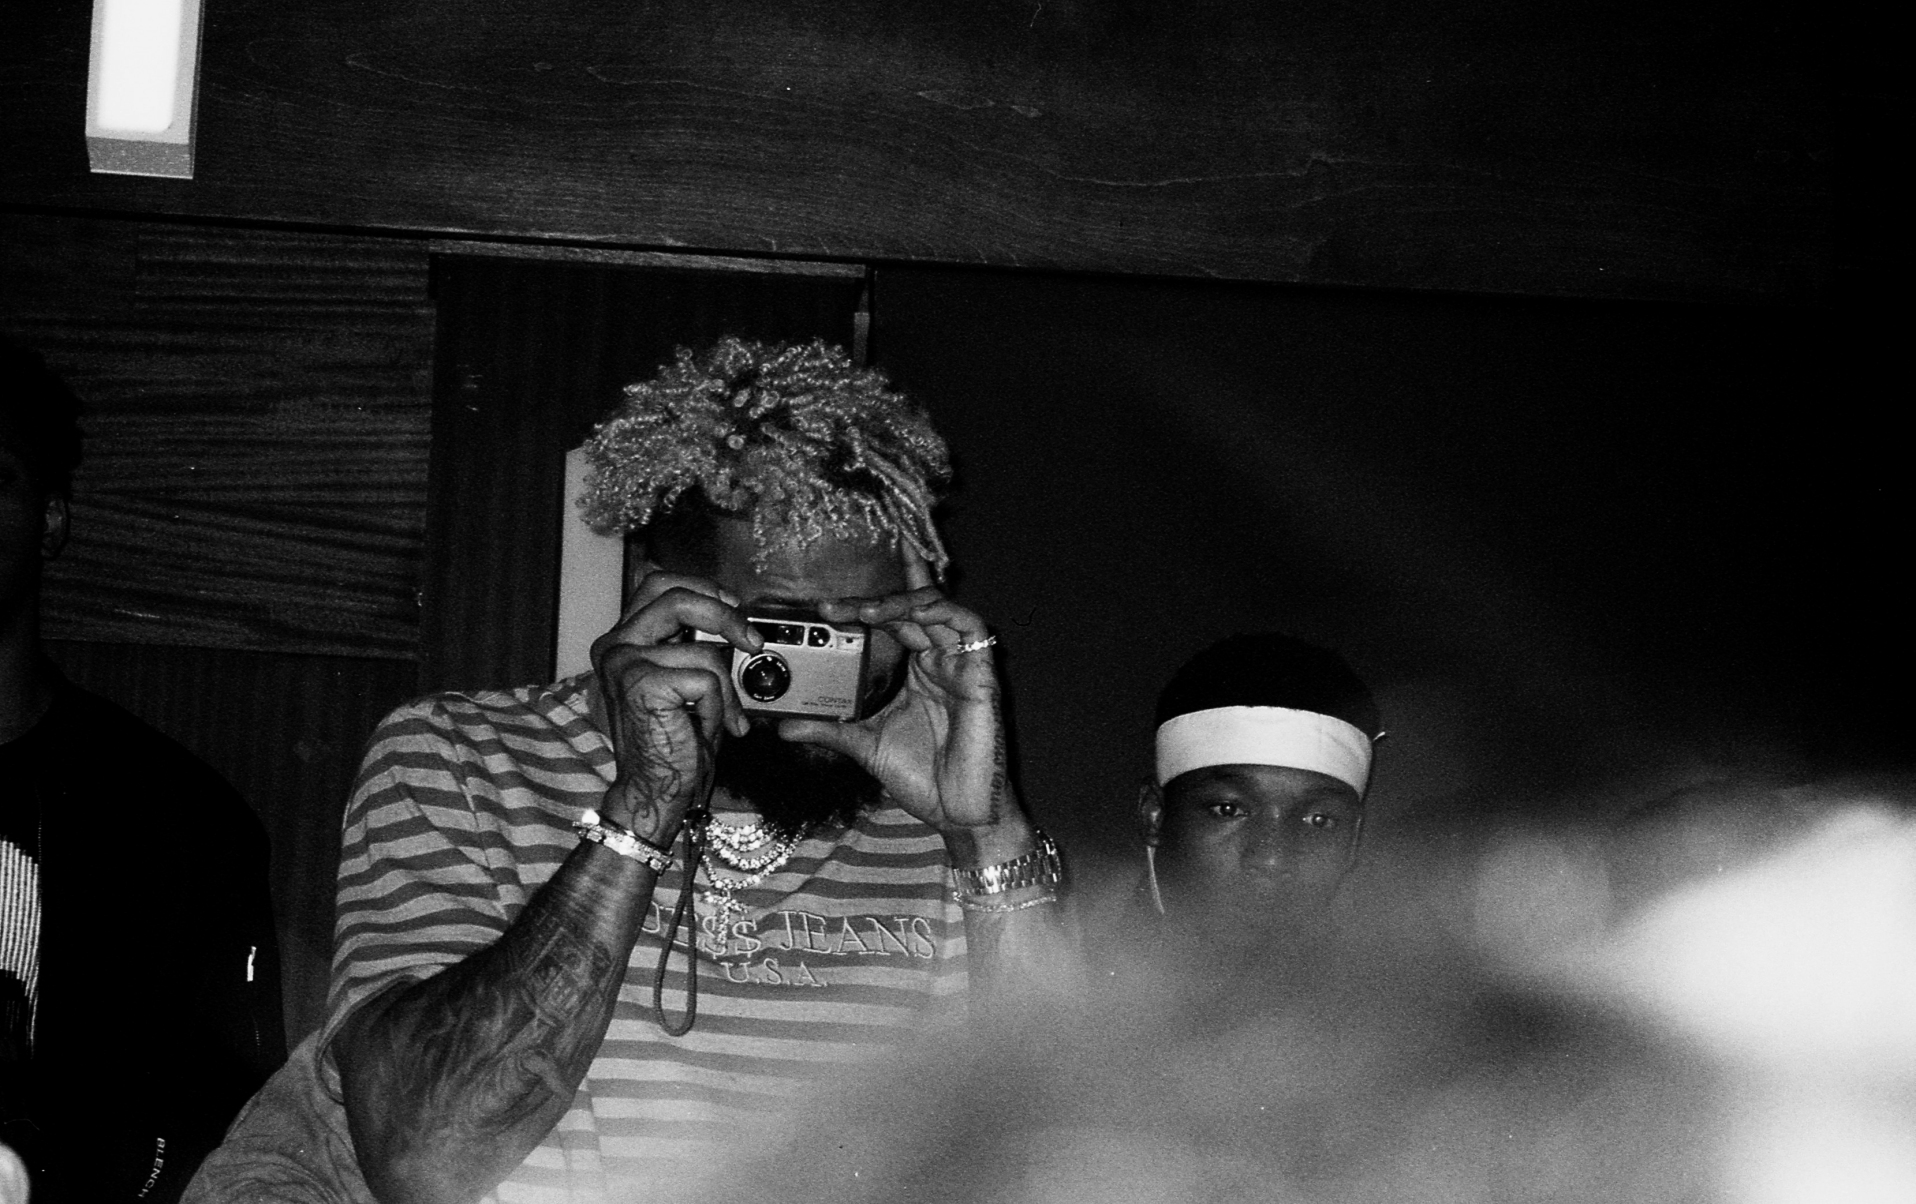 Odell taking a photo of the crowd. GOAT x Harden Party 2018